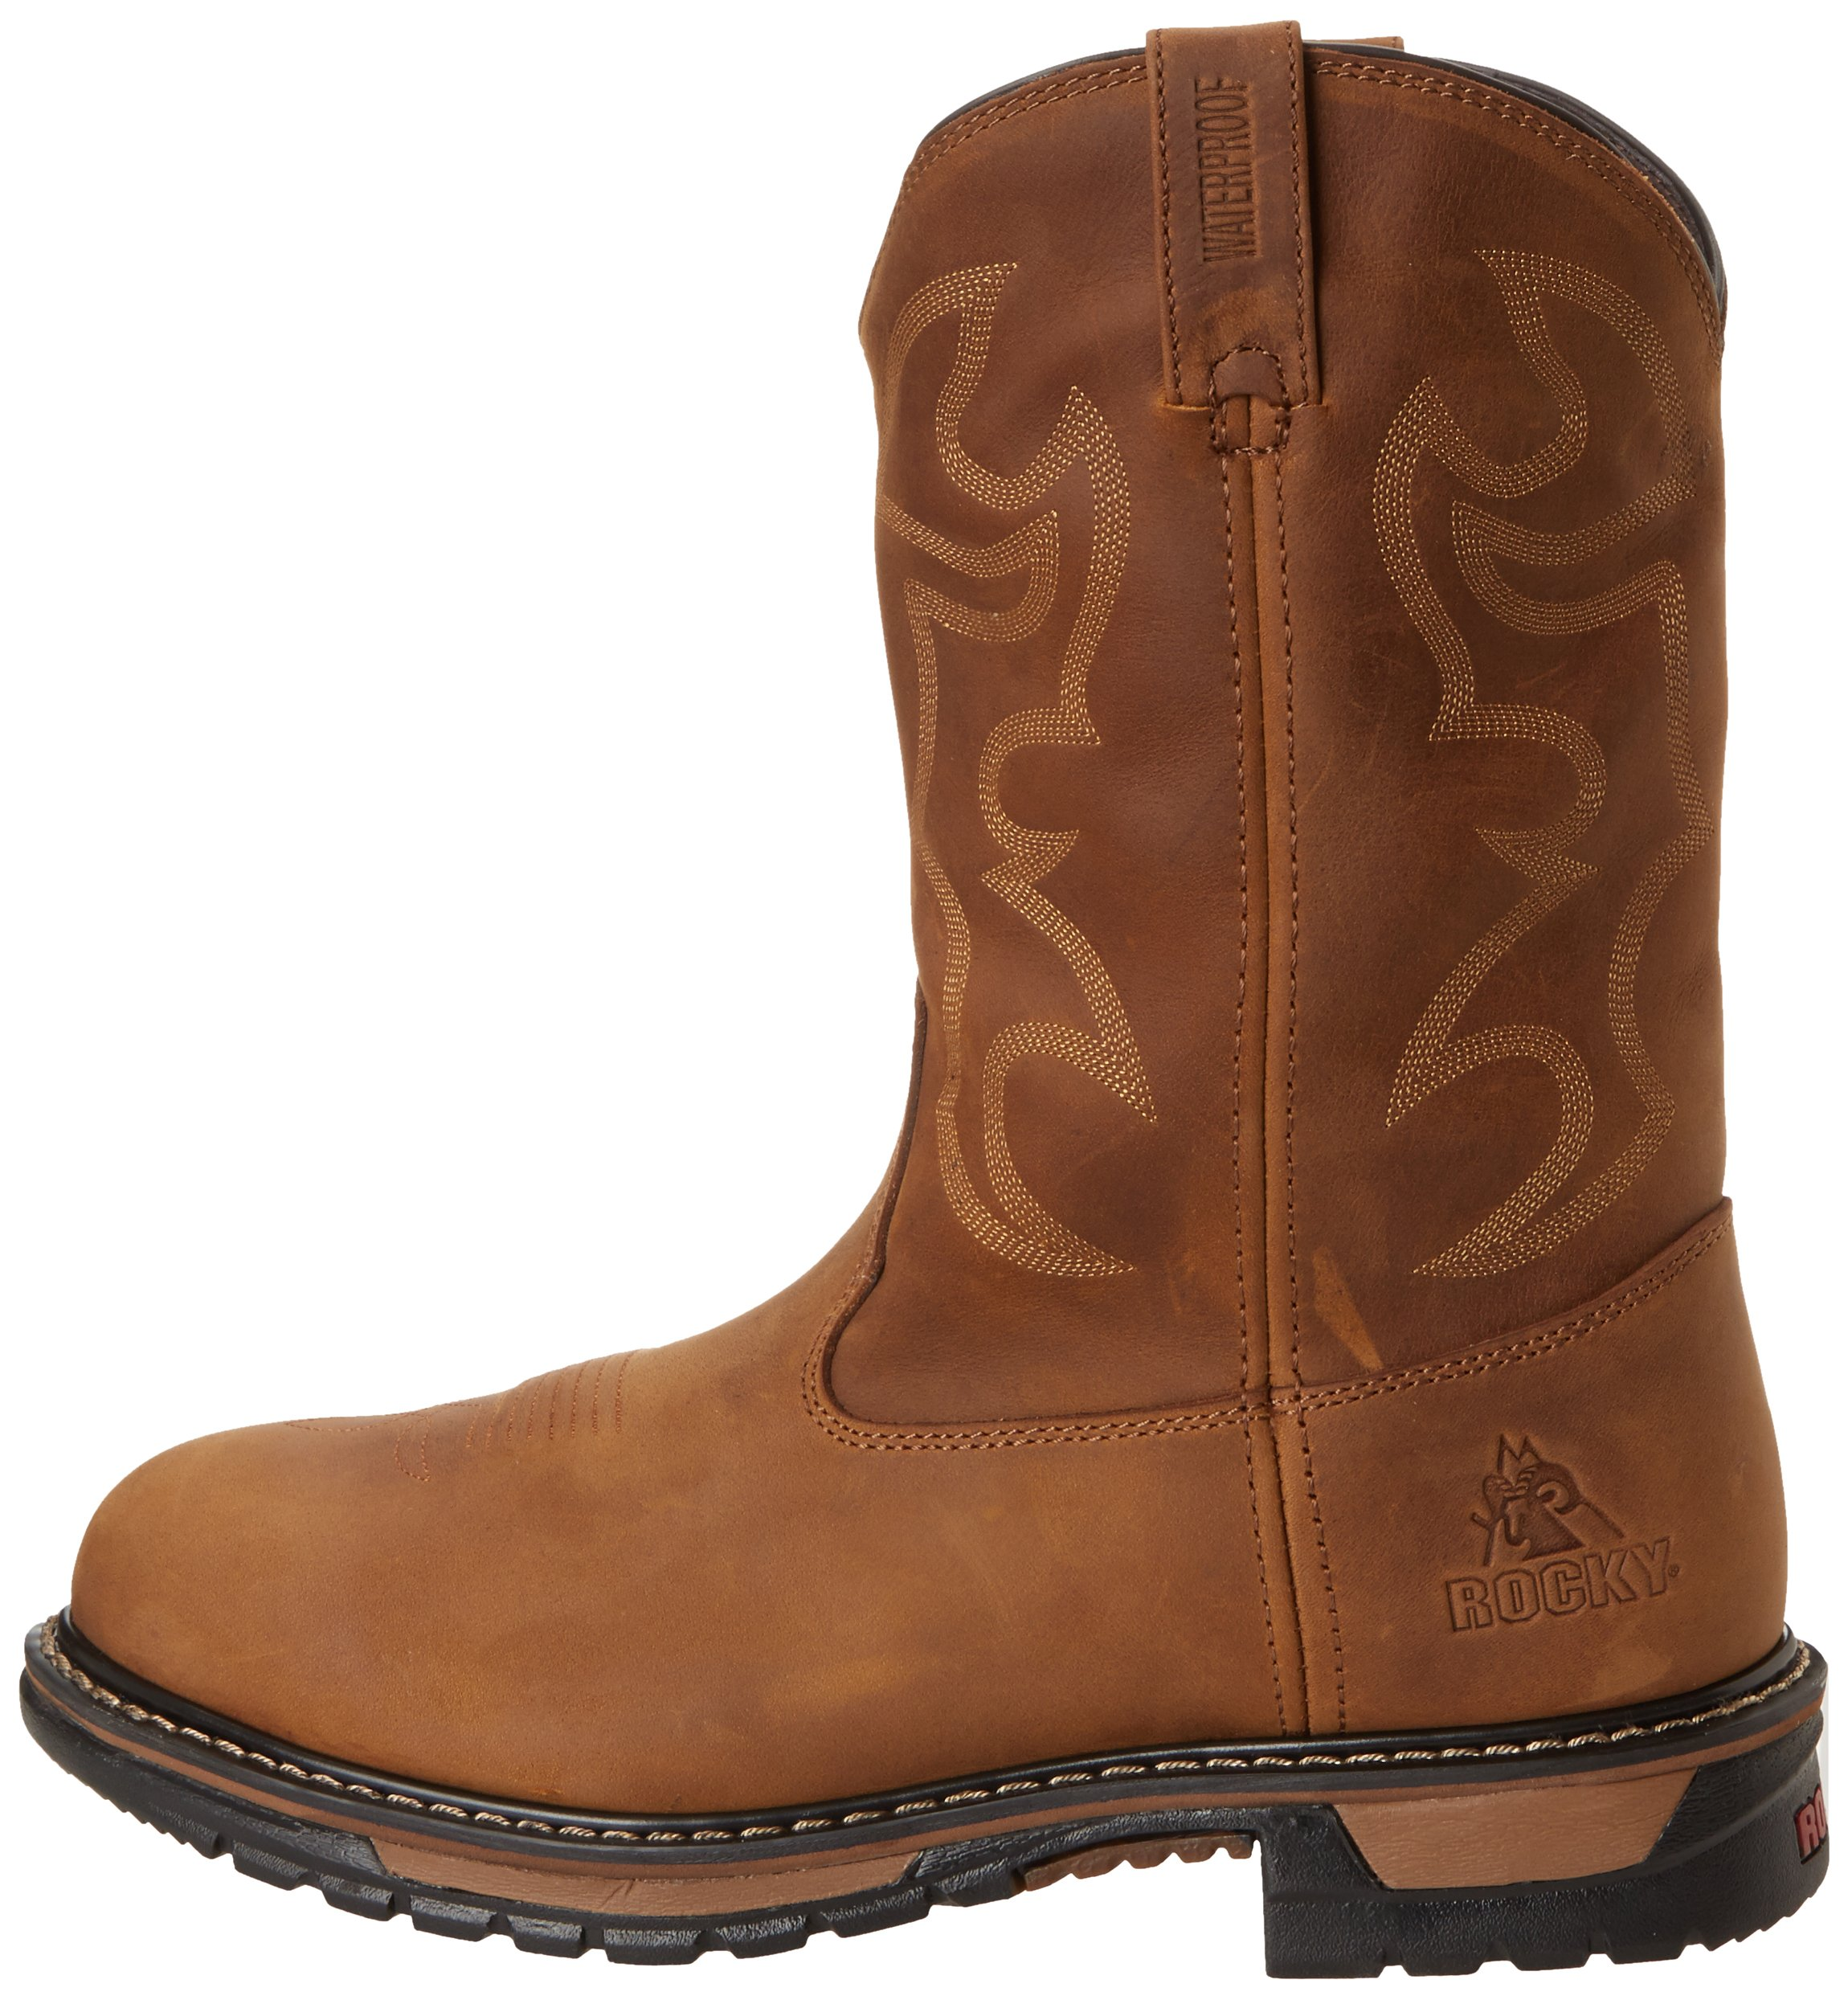 Rocky Men's FQ0002733 Boot, aztec crazy horse, 11 M US by Rocky (Image #5)